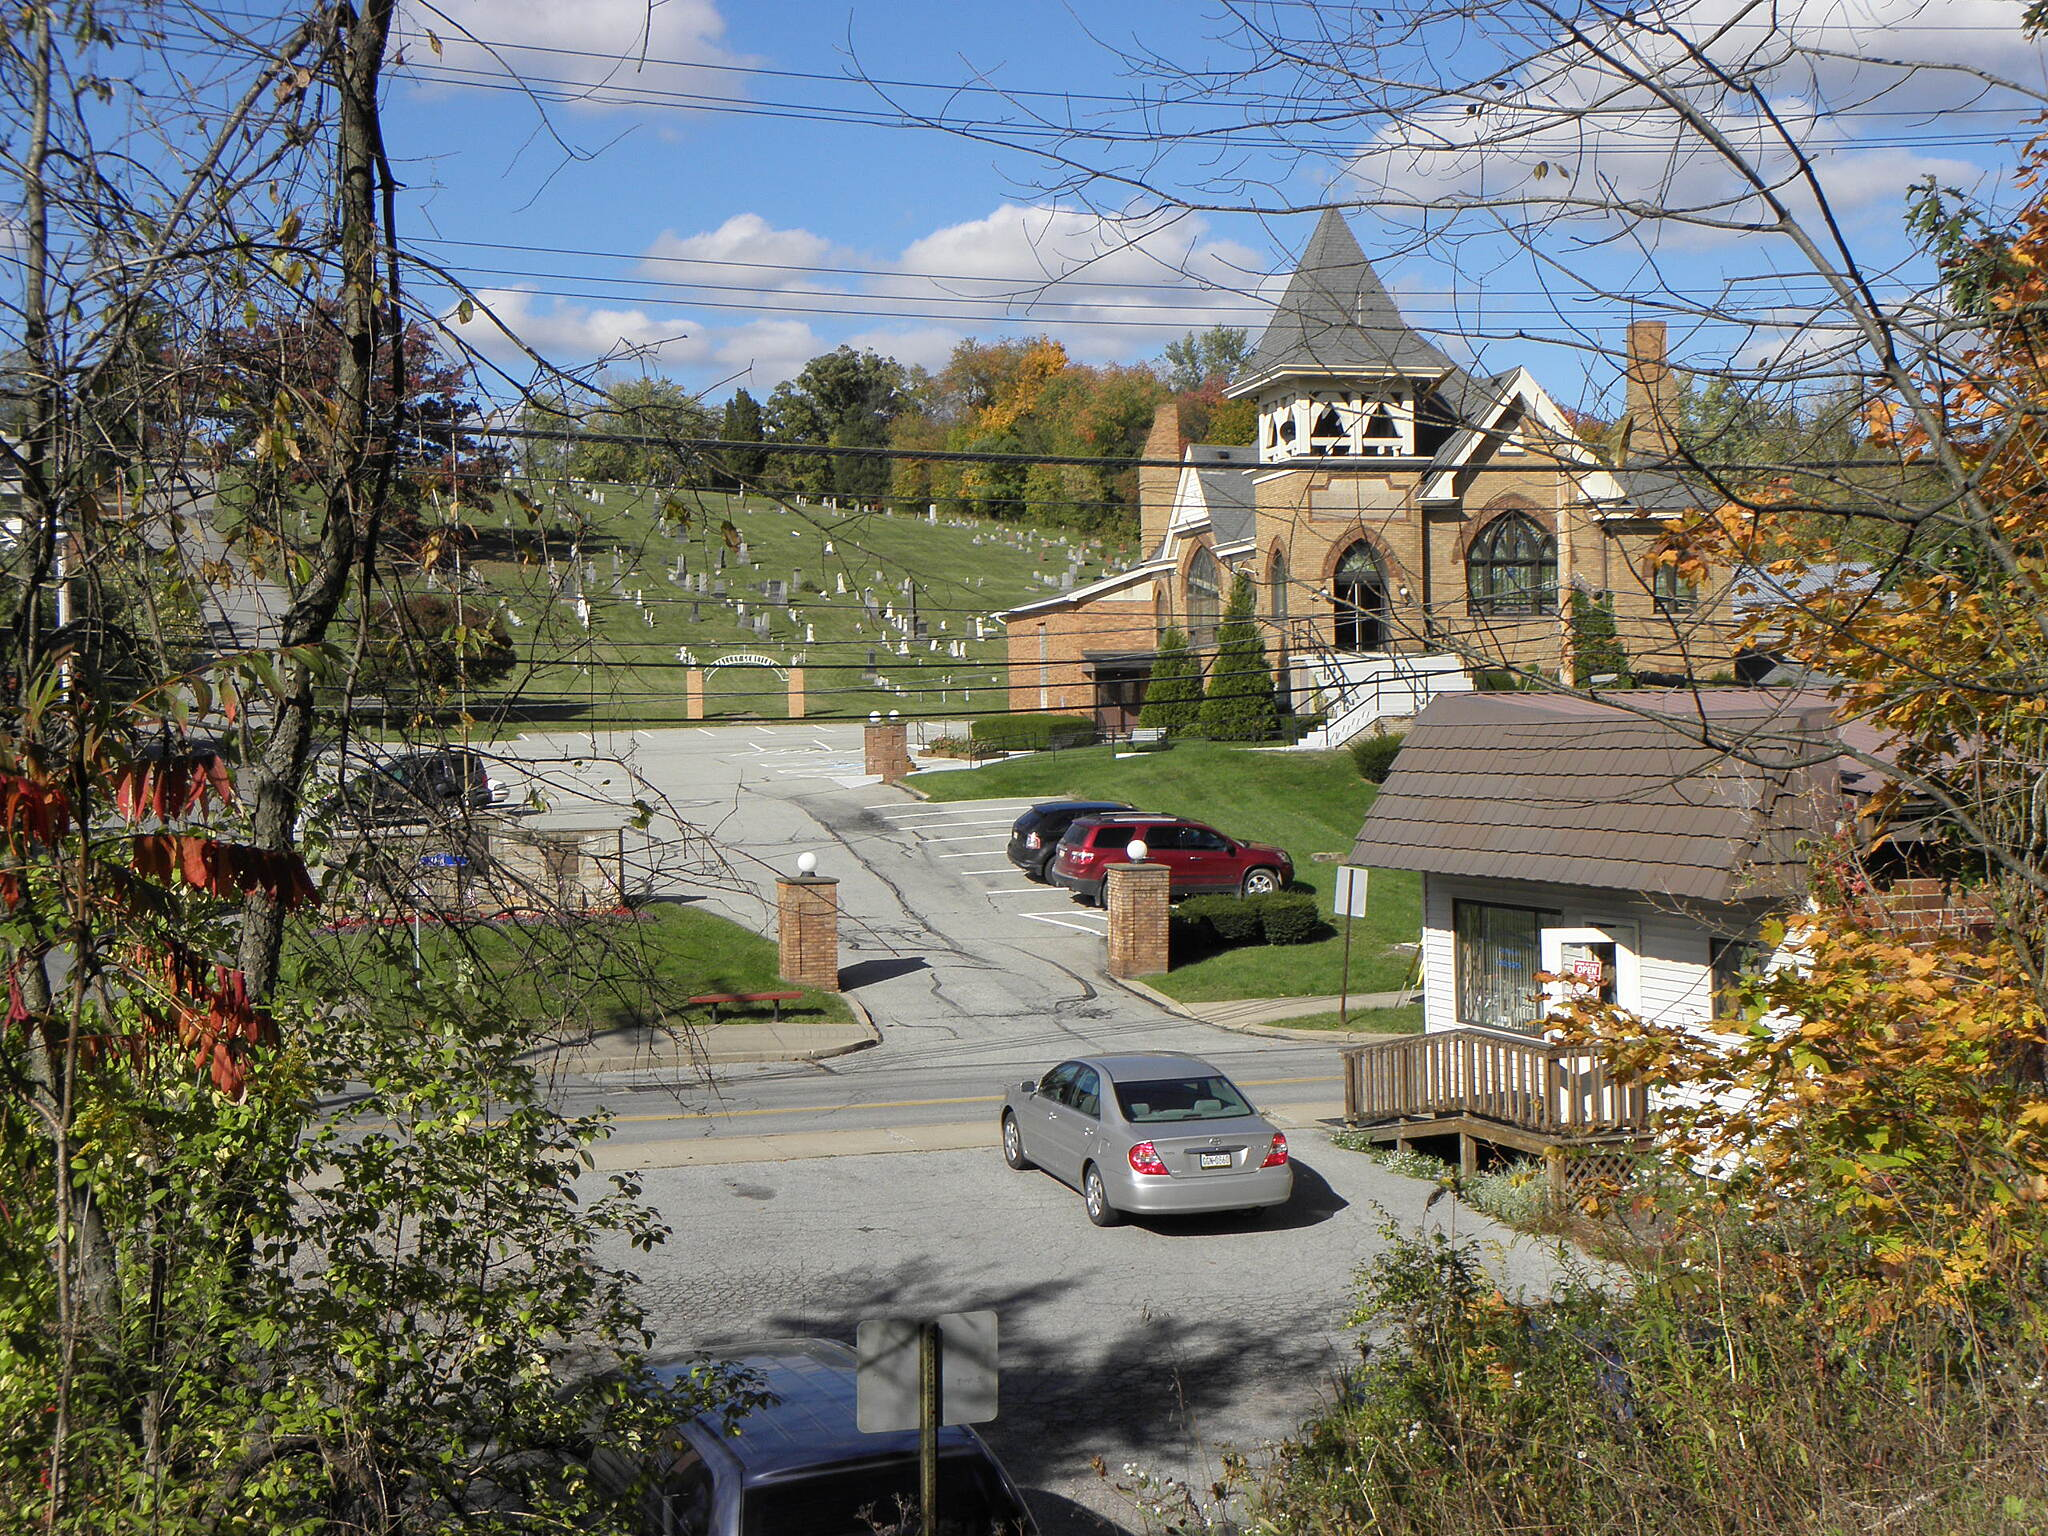 Montour Trail Valley Presbyterian Church and Cemetary in Imperial-Enlow from the trail.